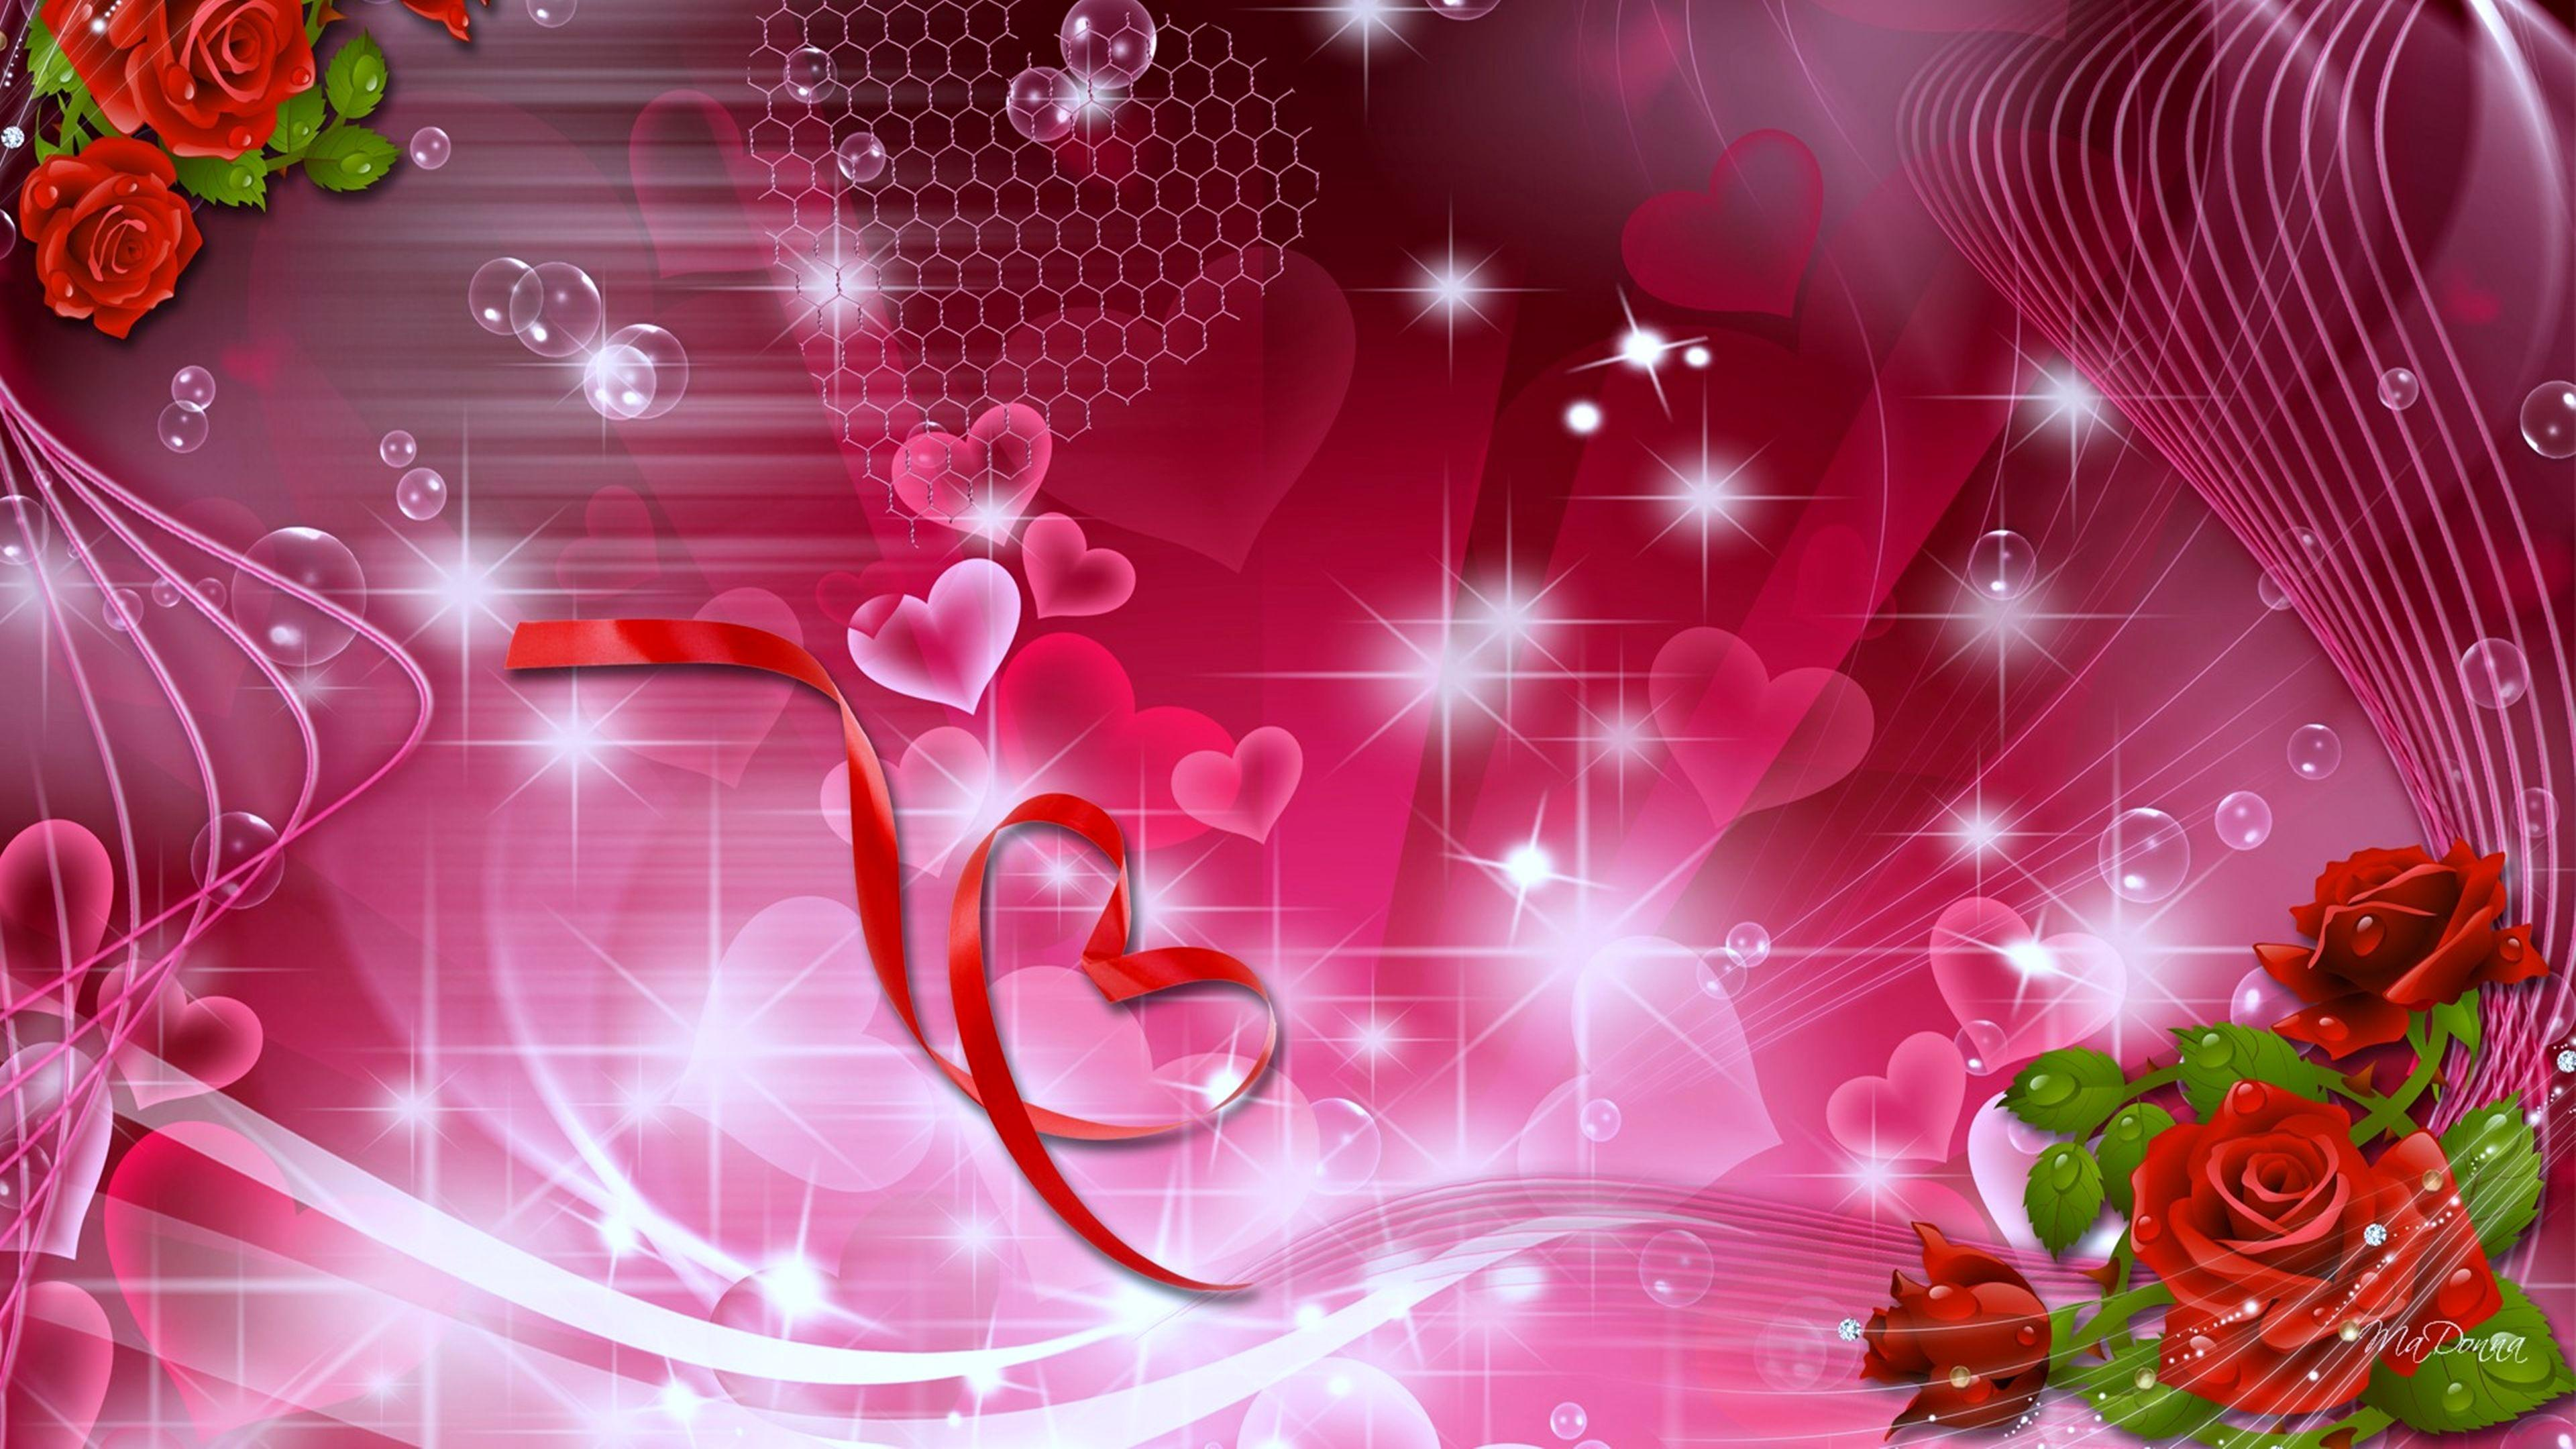 Backgrounds Hd Love Wallpaper Cave